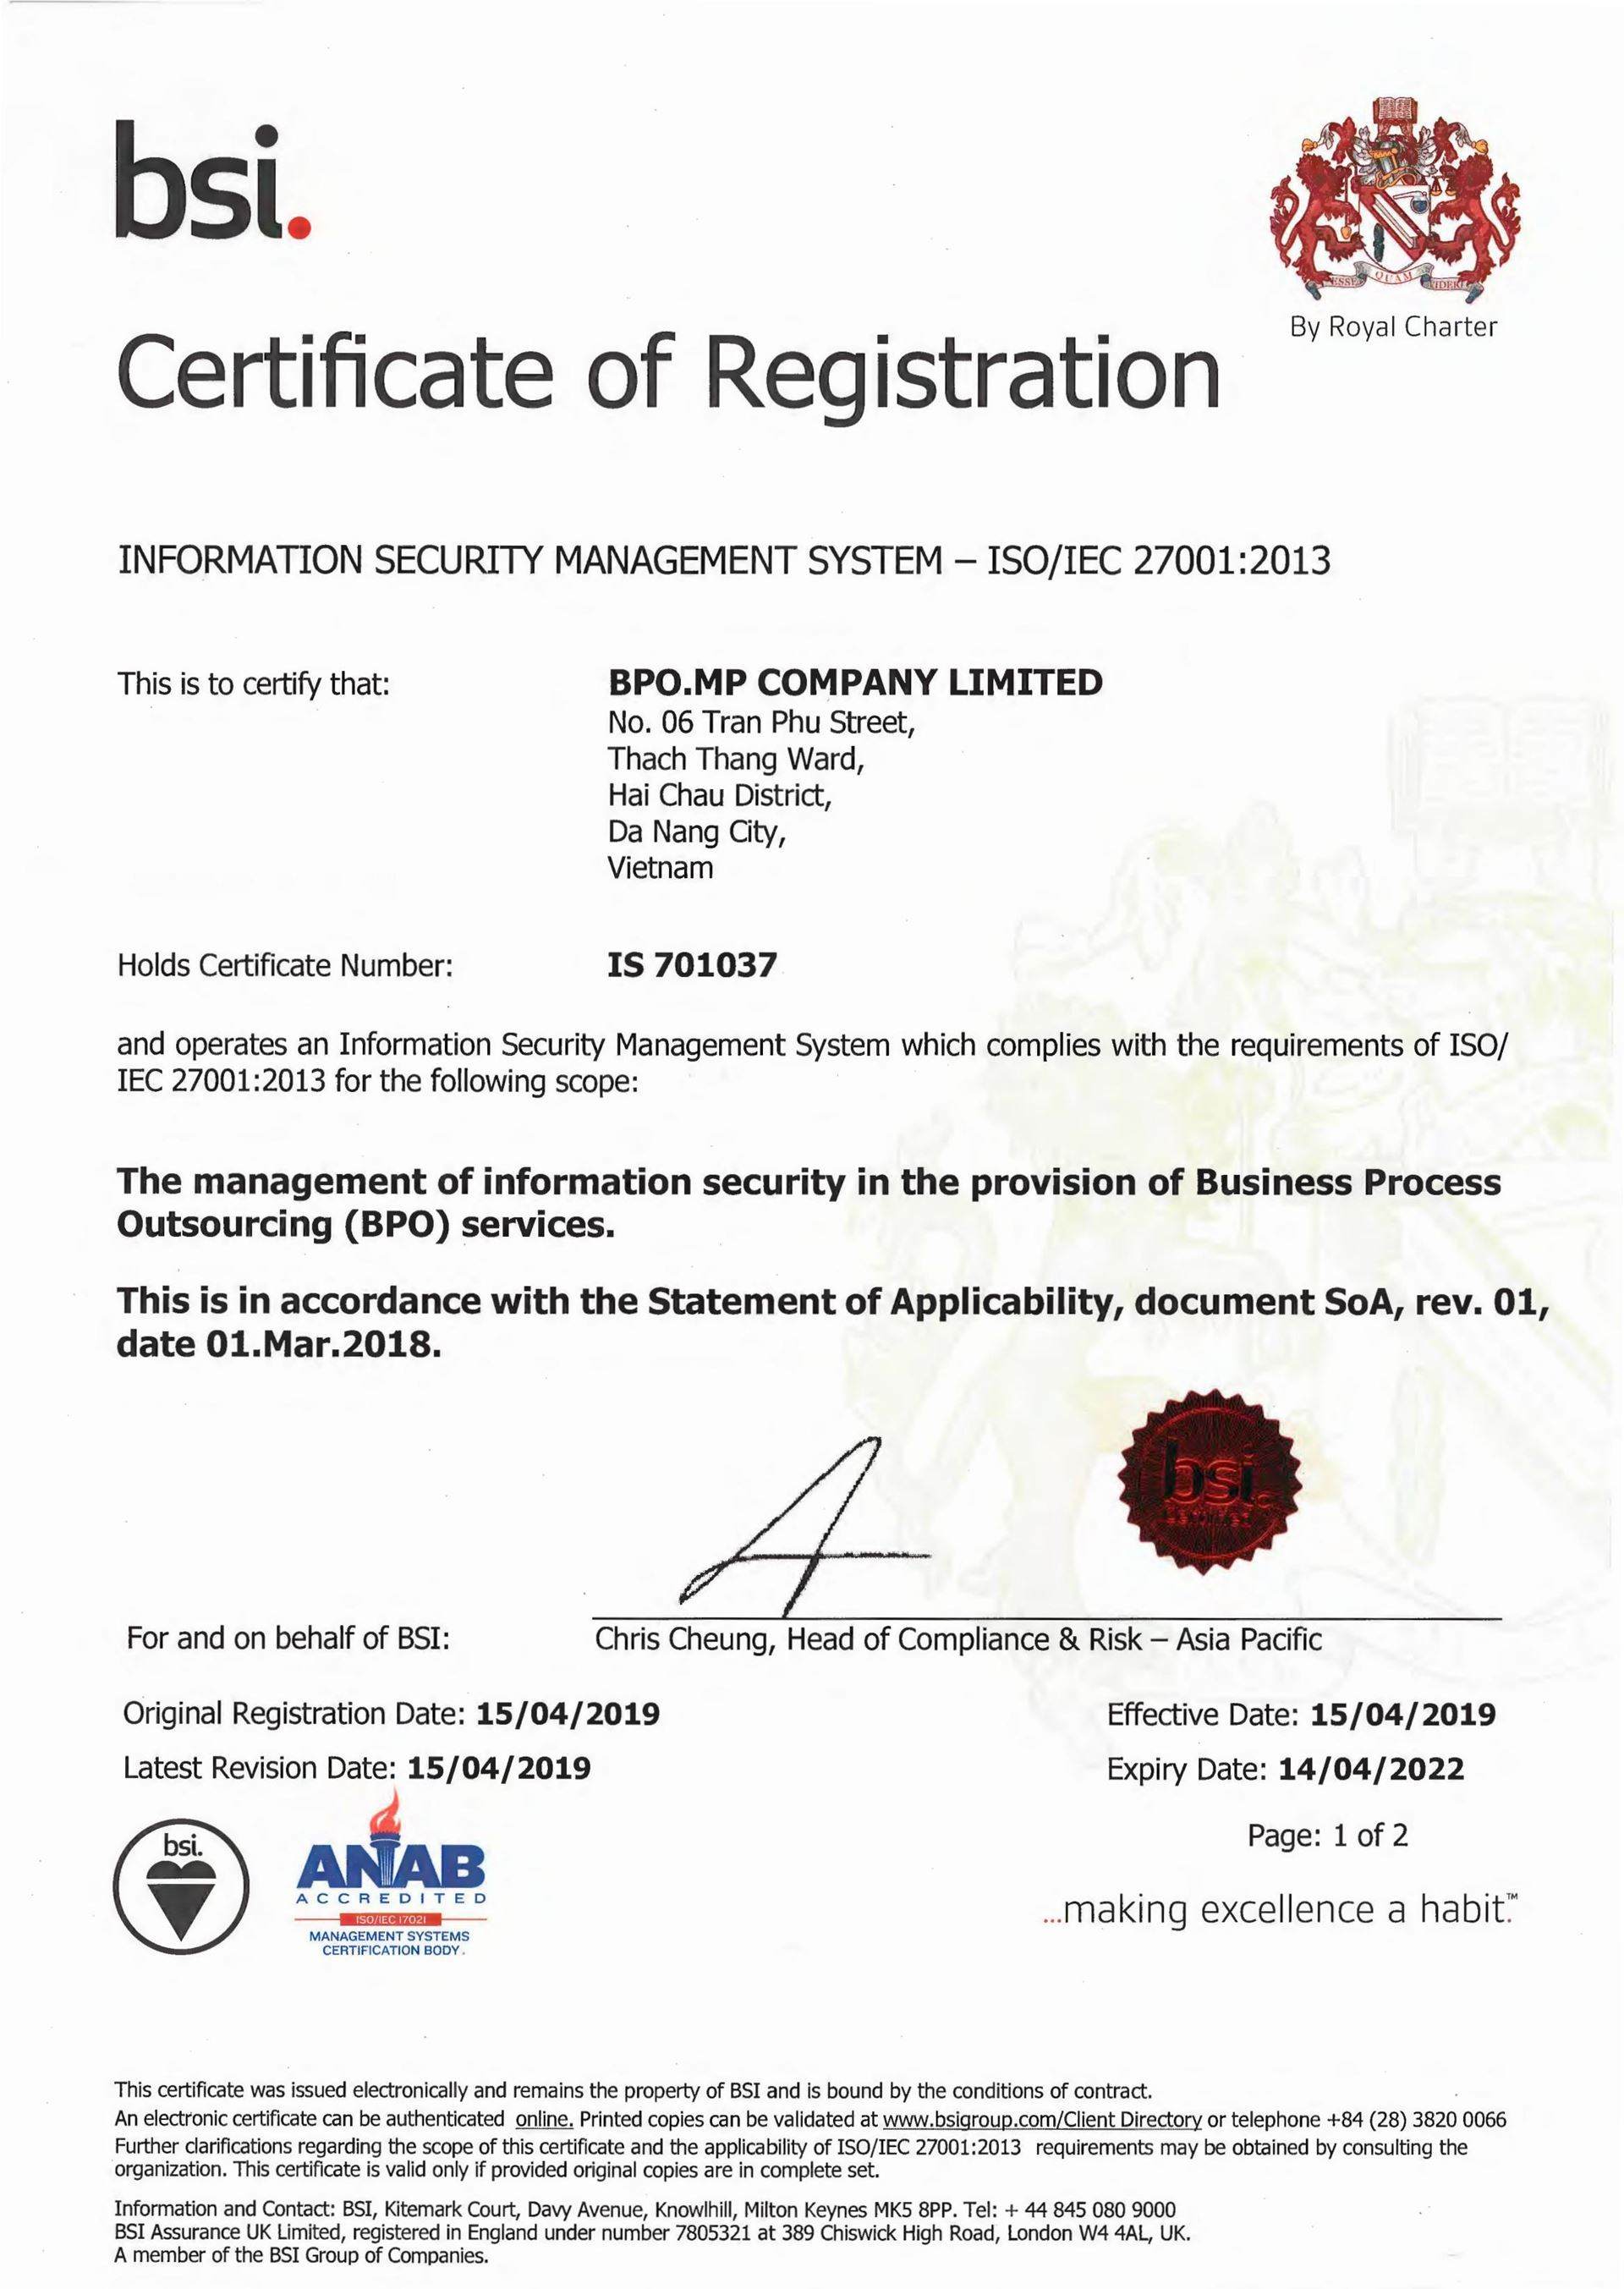 BPO.MP Achieved Certificate Of Registration: Information Security Management System – ISO/IEC 27001:2013